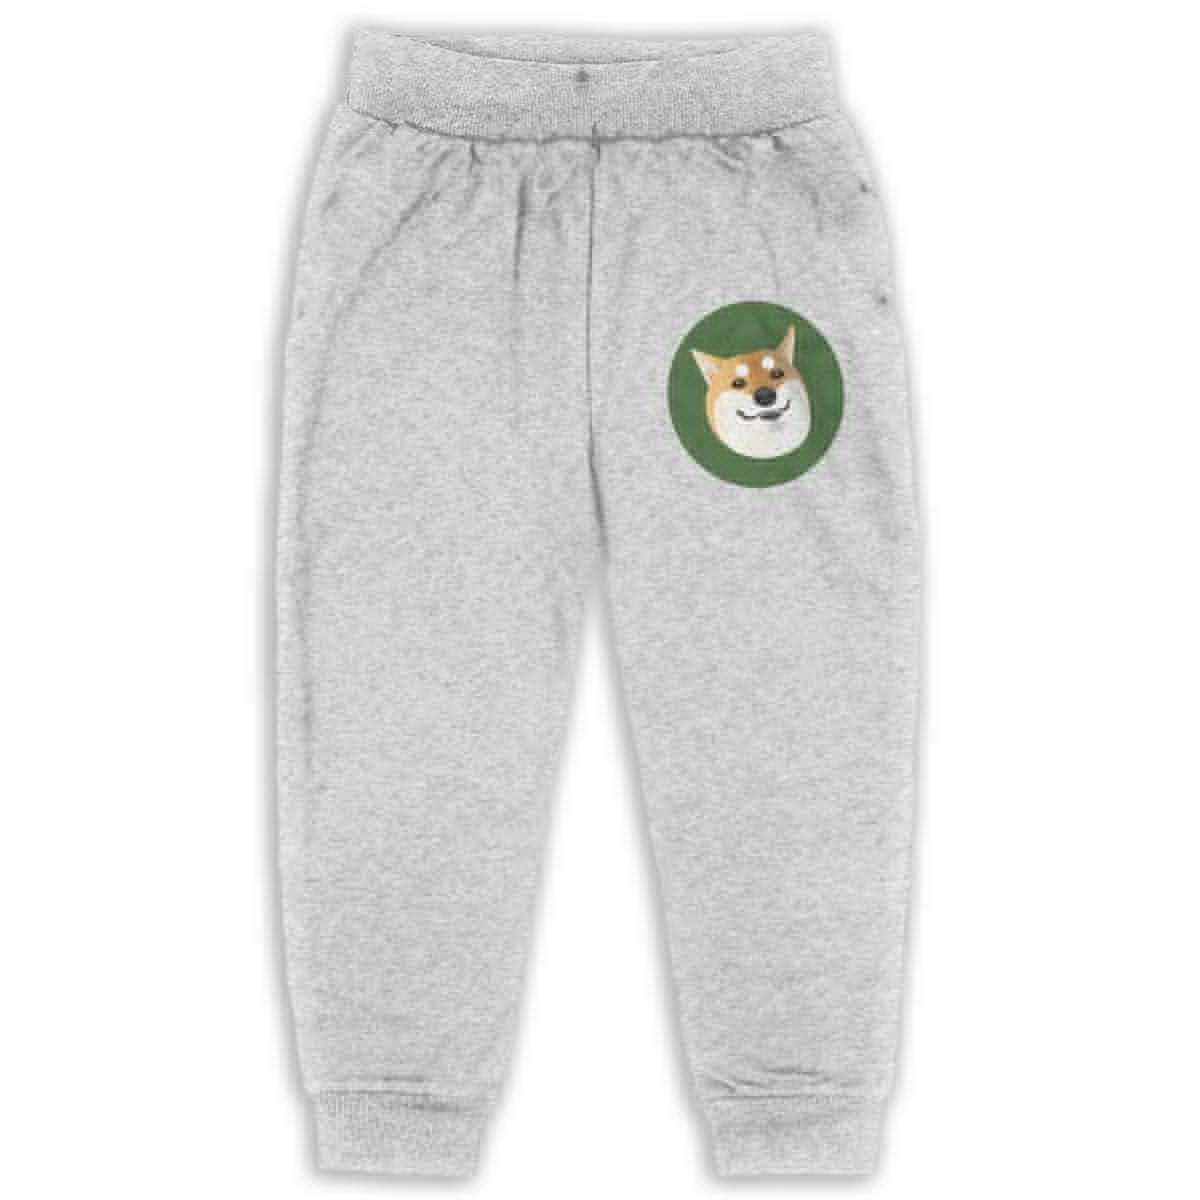 Shiba Inu Logo Kids Cotton Sweatpants,Jogger Long Jersey Sweatpants